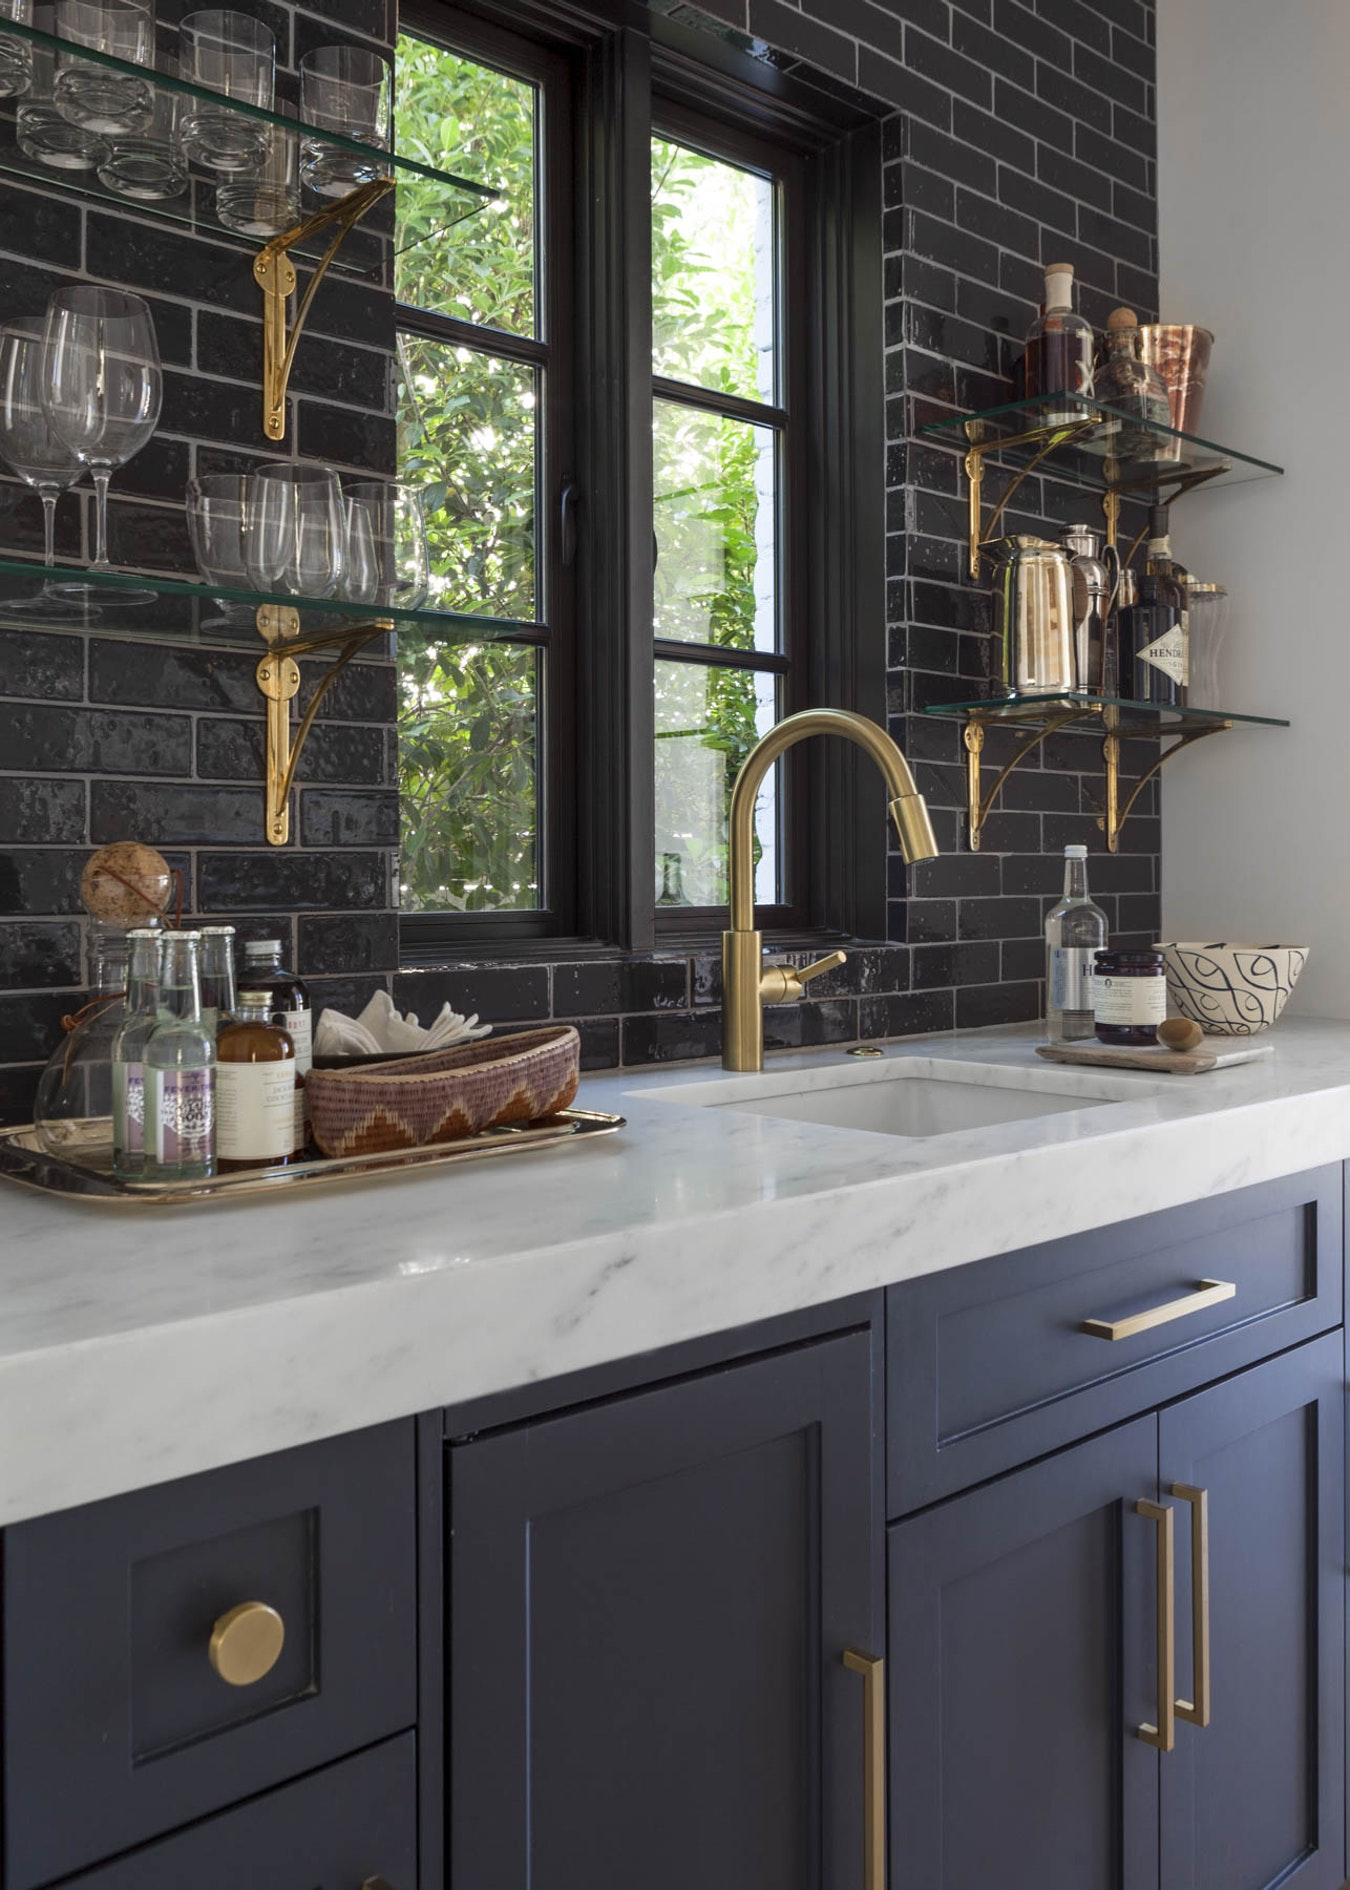 Black Subway Tile Backsplash White Marble Countertop Gold Hardware Benjamin Moore Raccoon Fur Painted Kitchen Cabinets Home Design